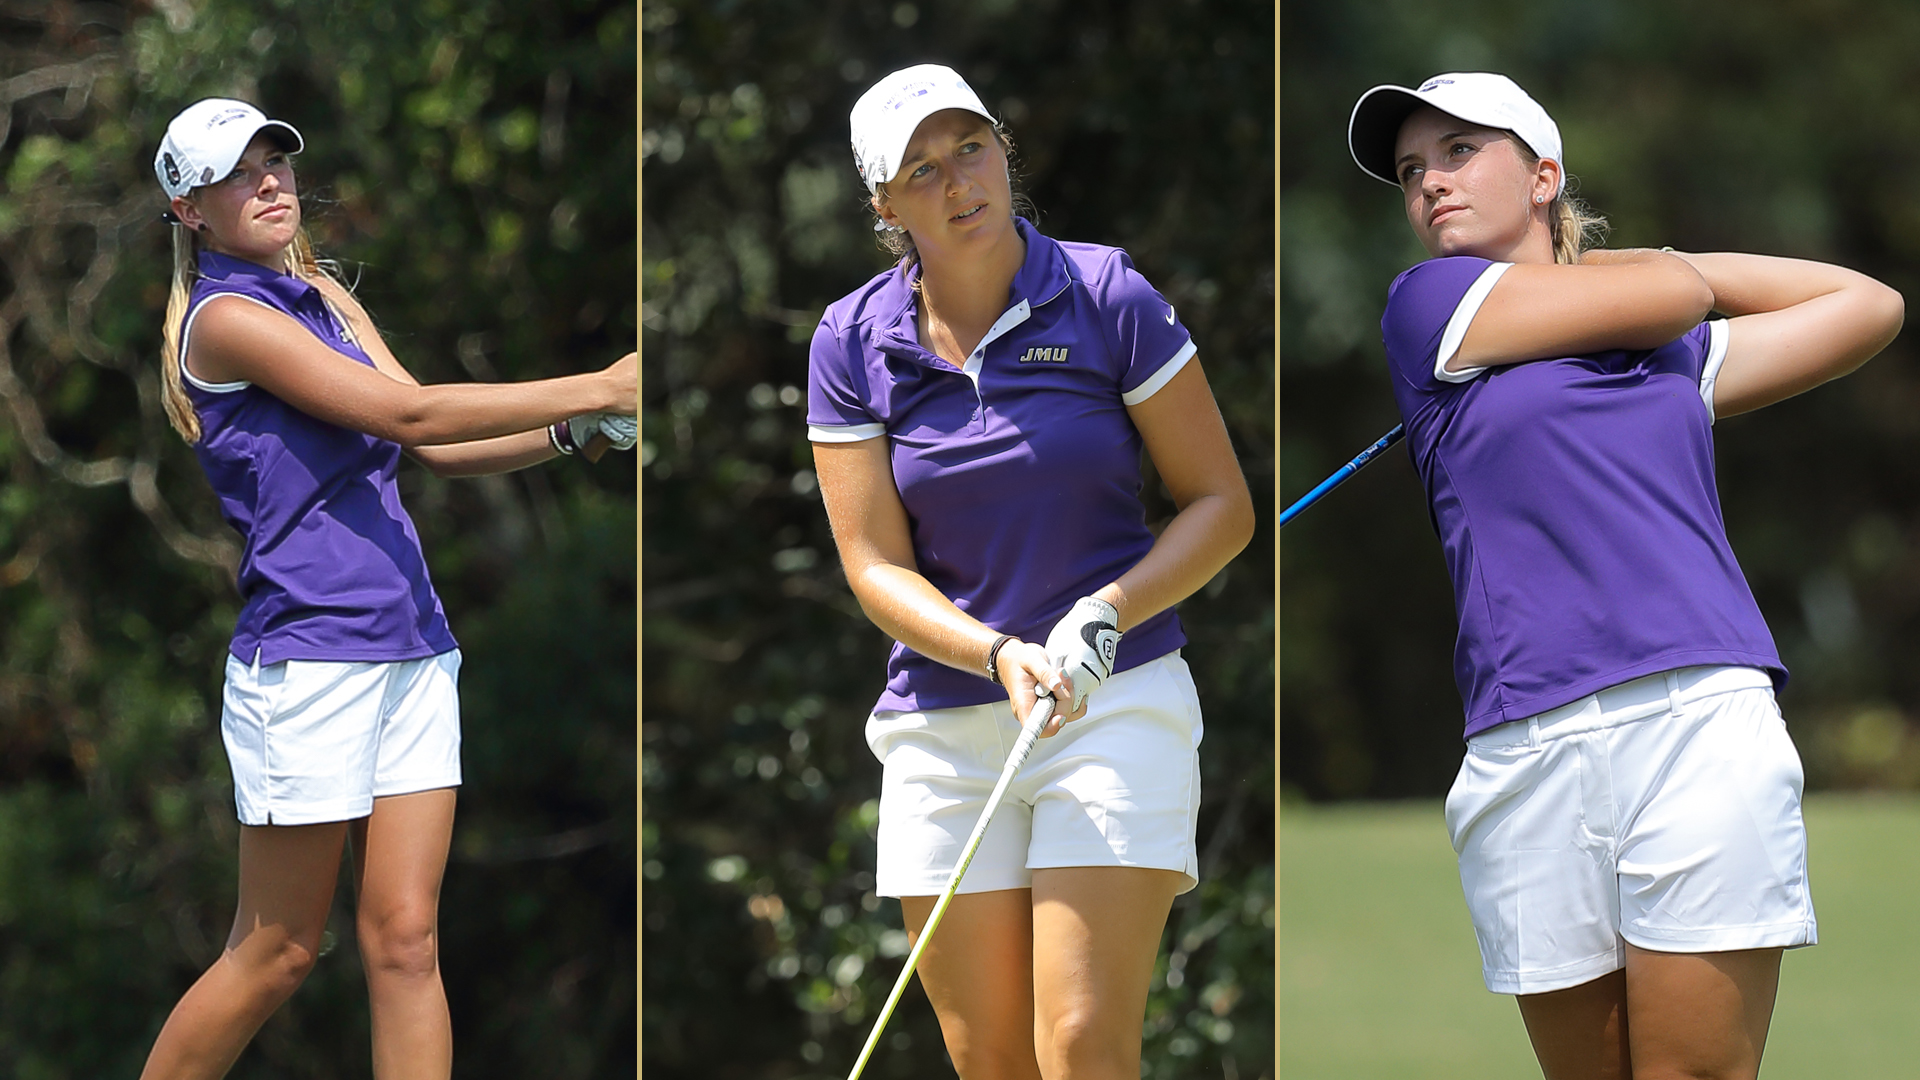 Women's Golf: Comegys Named State ROY; Cox, Gomez-Ruiz Earn All-State Honors